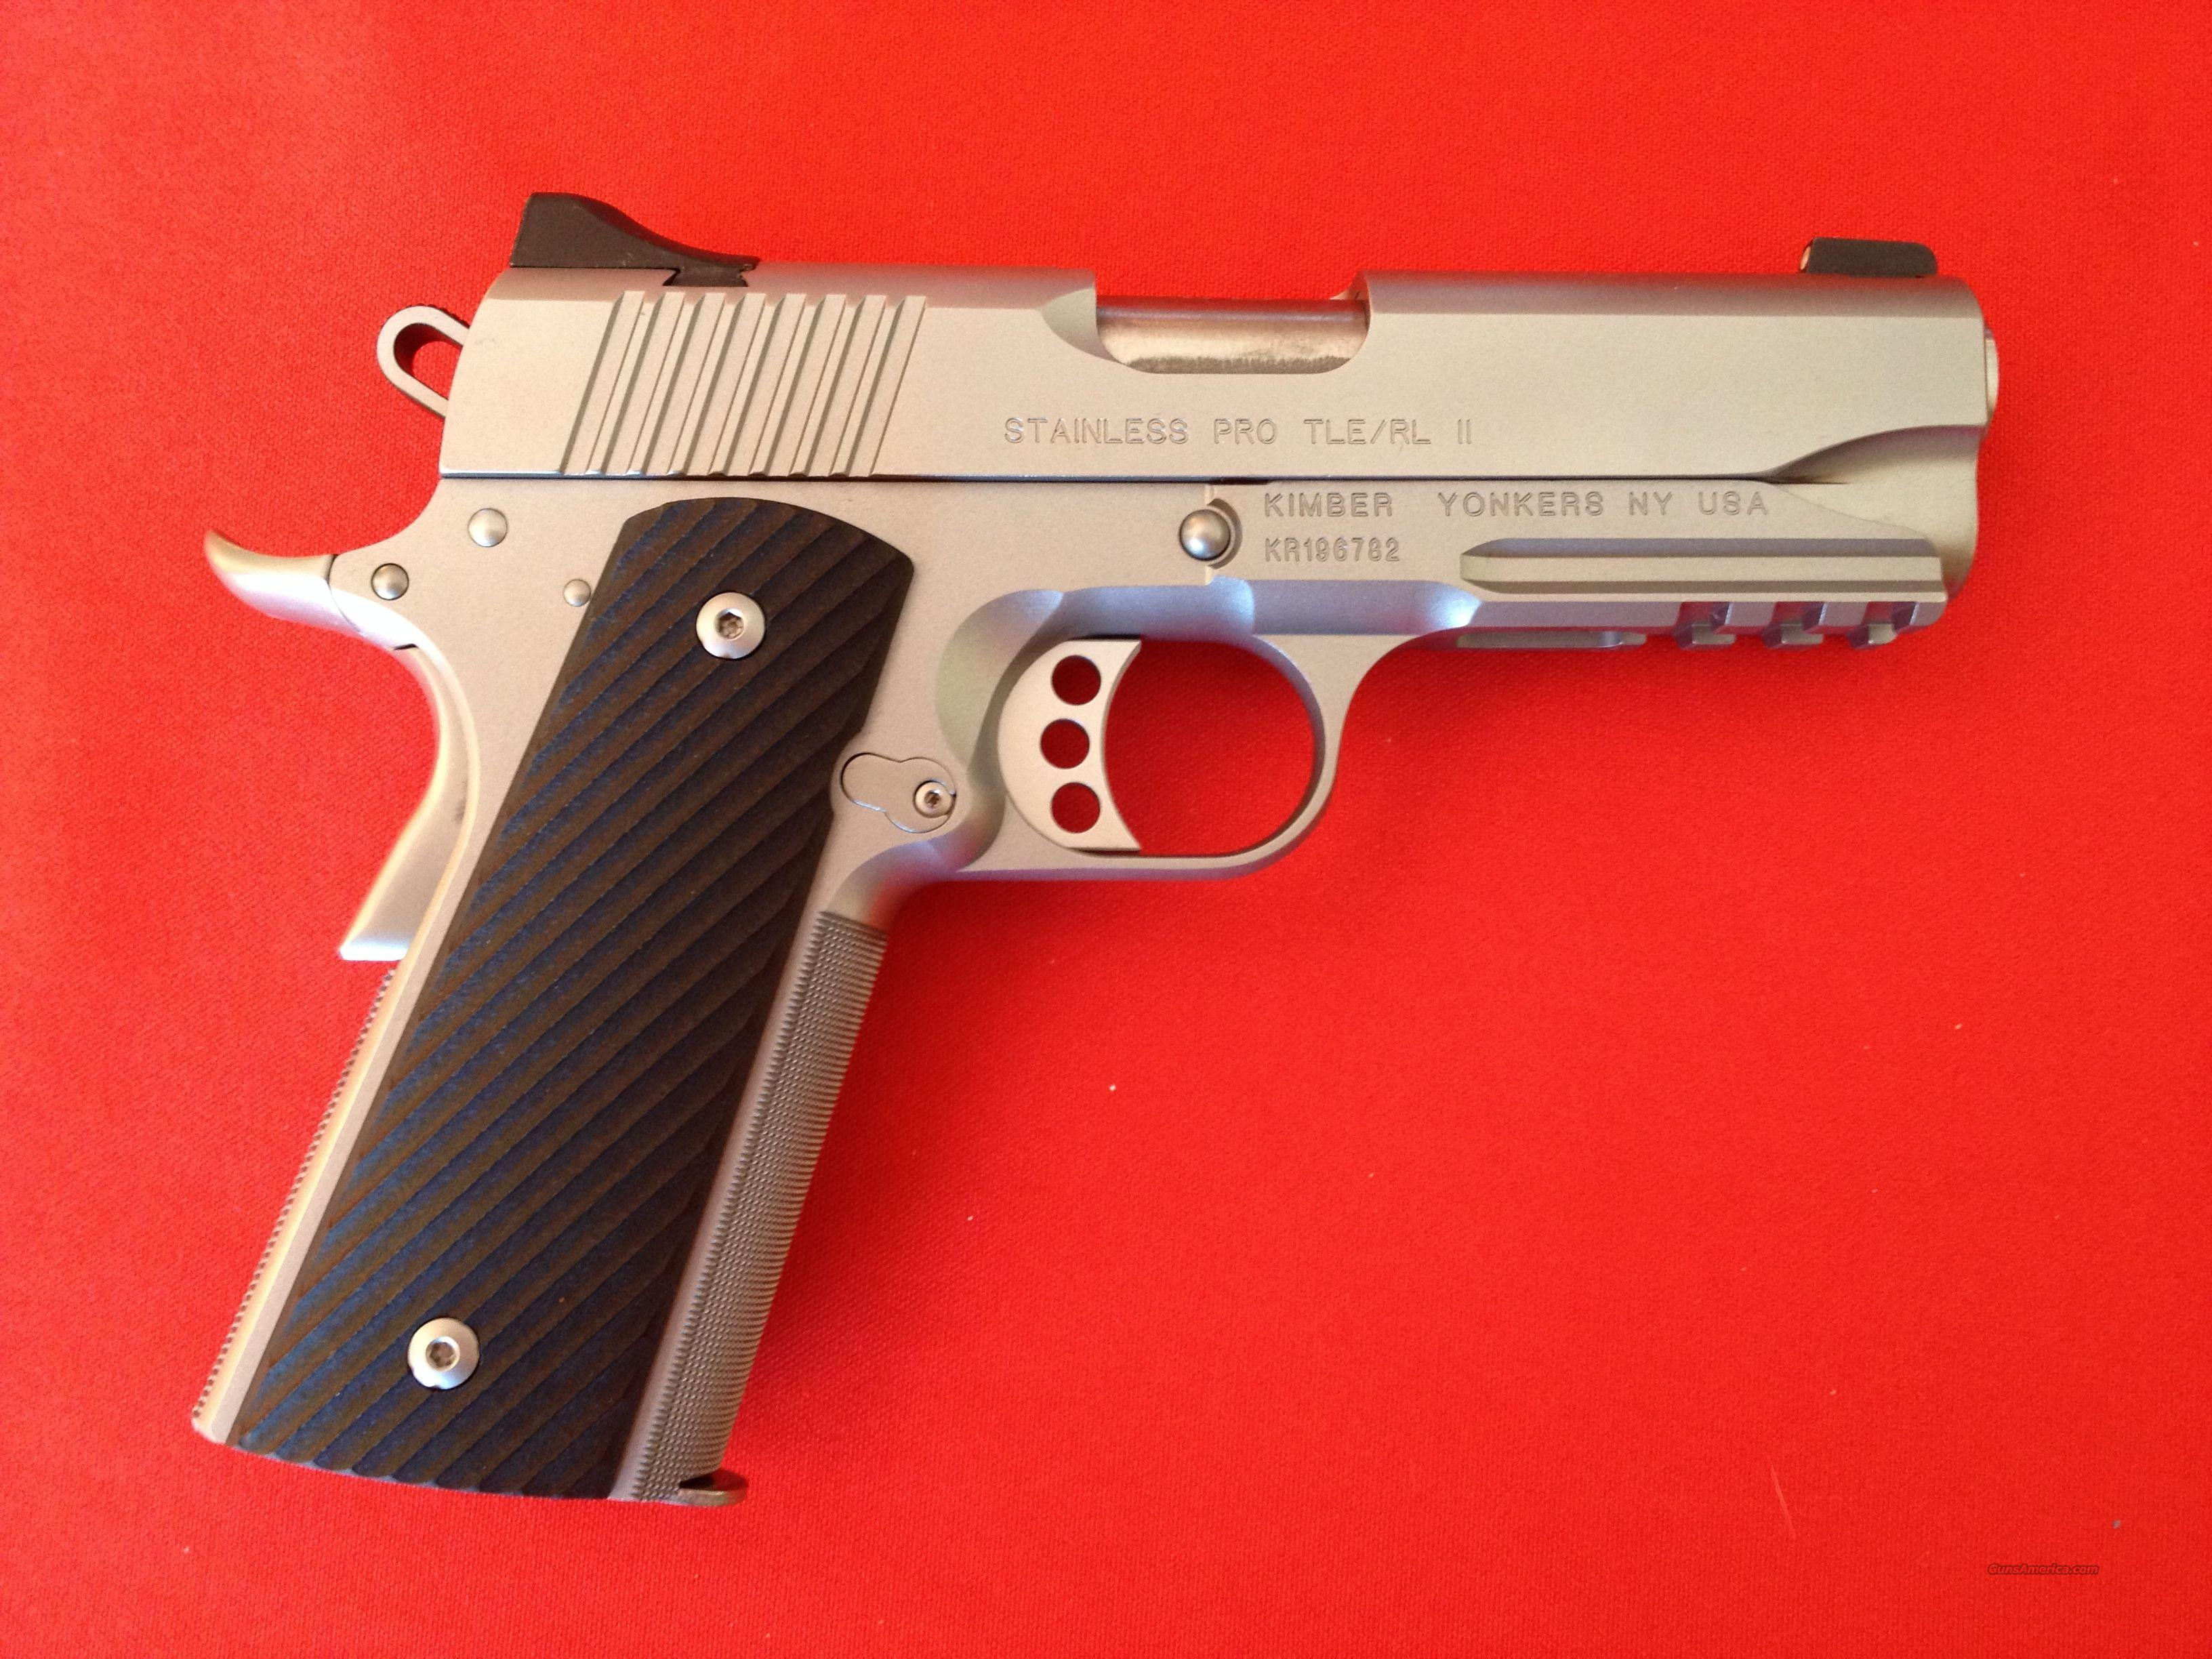 Creek Parts Diagram Picturesque Kimber 1911 Beautiful Stainless Pro Tle Ii Night Sights Acp Grips 3264x2448